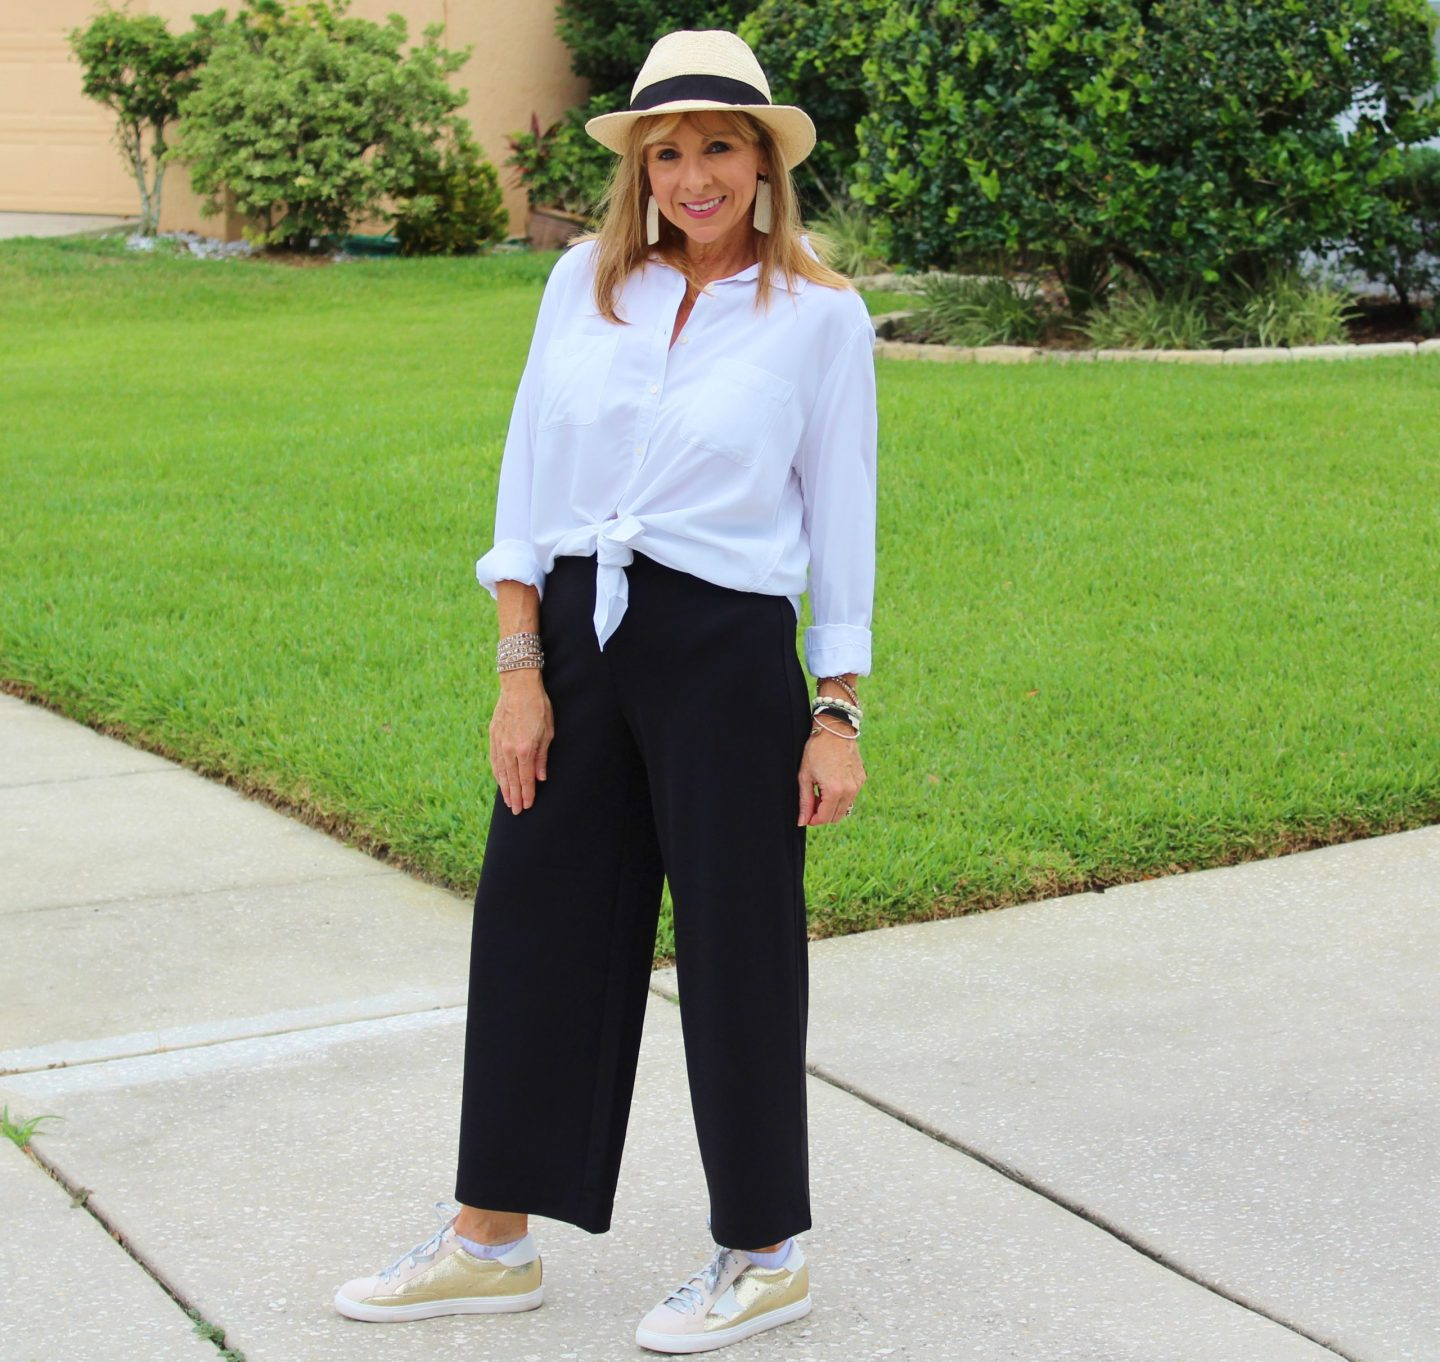 Black Wide Leg Pants + White Button Up Shirt + Hat